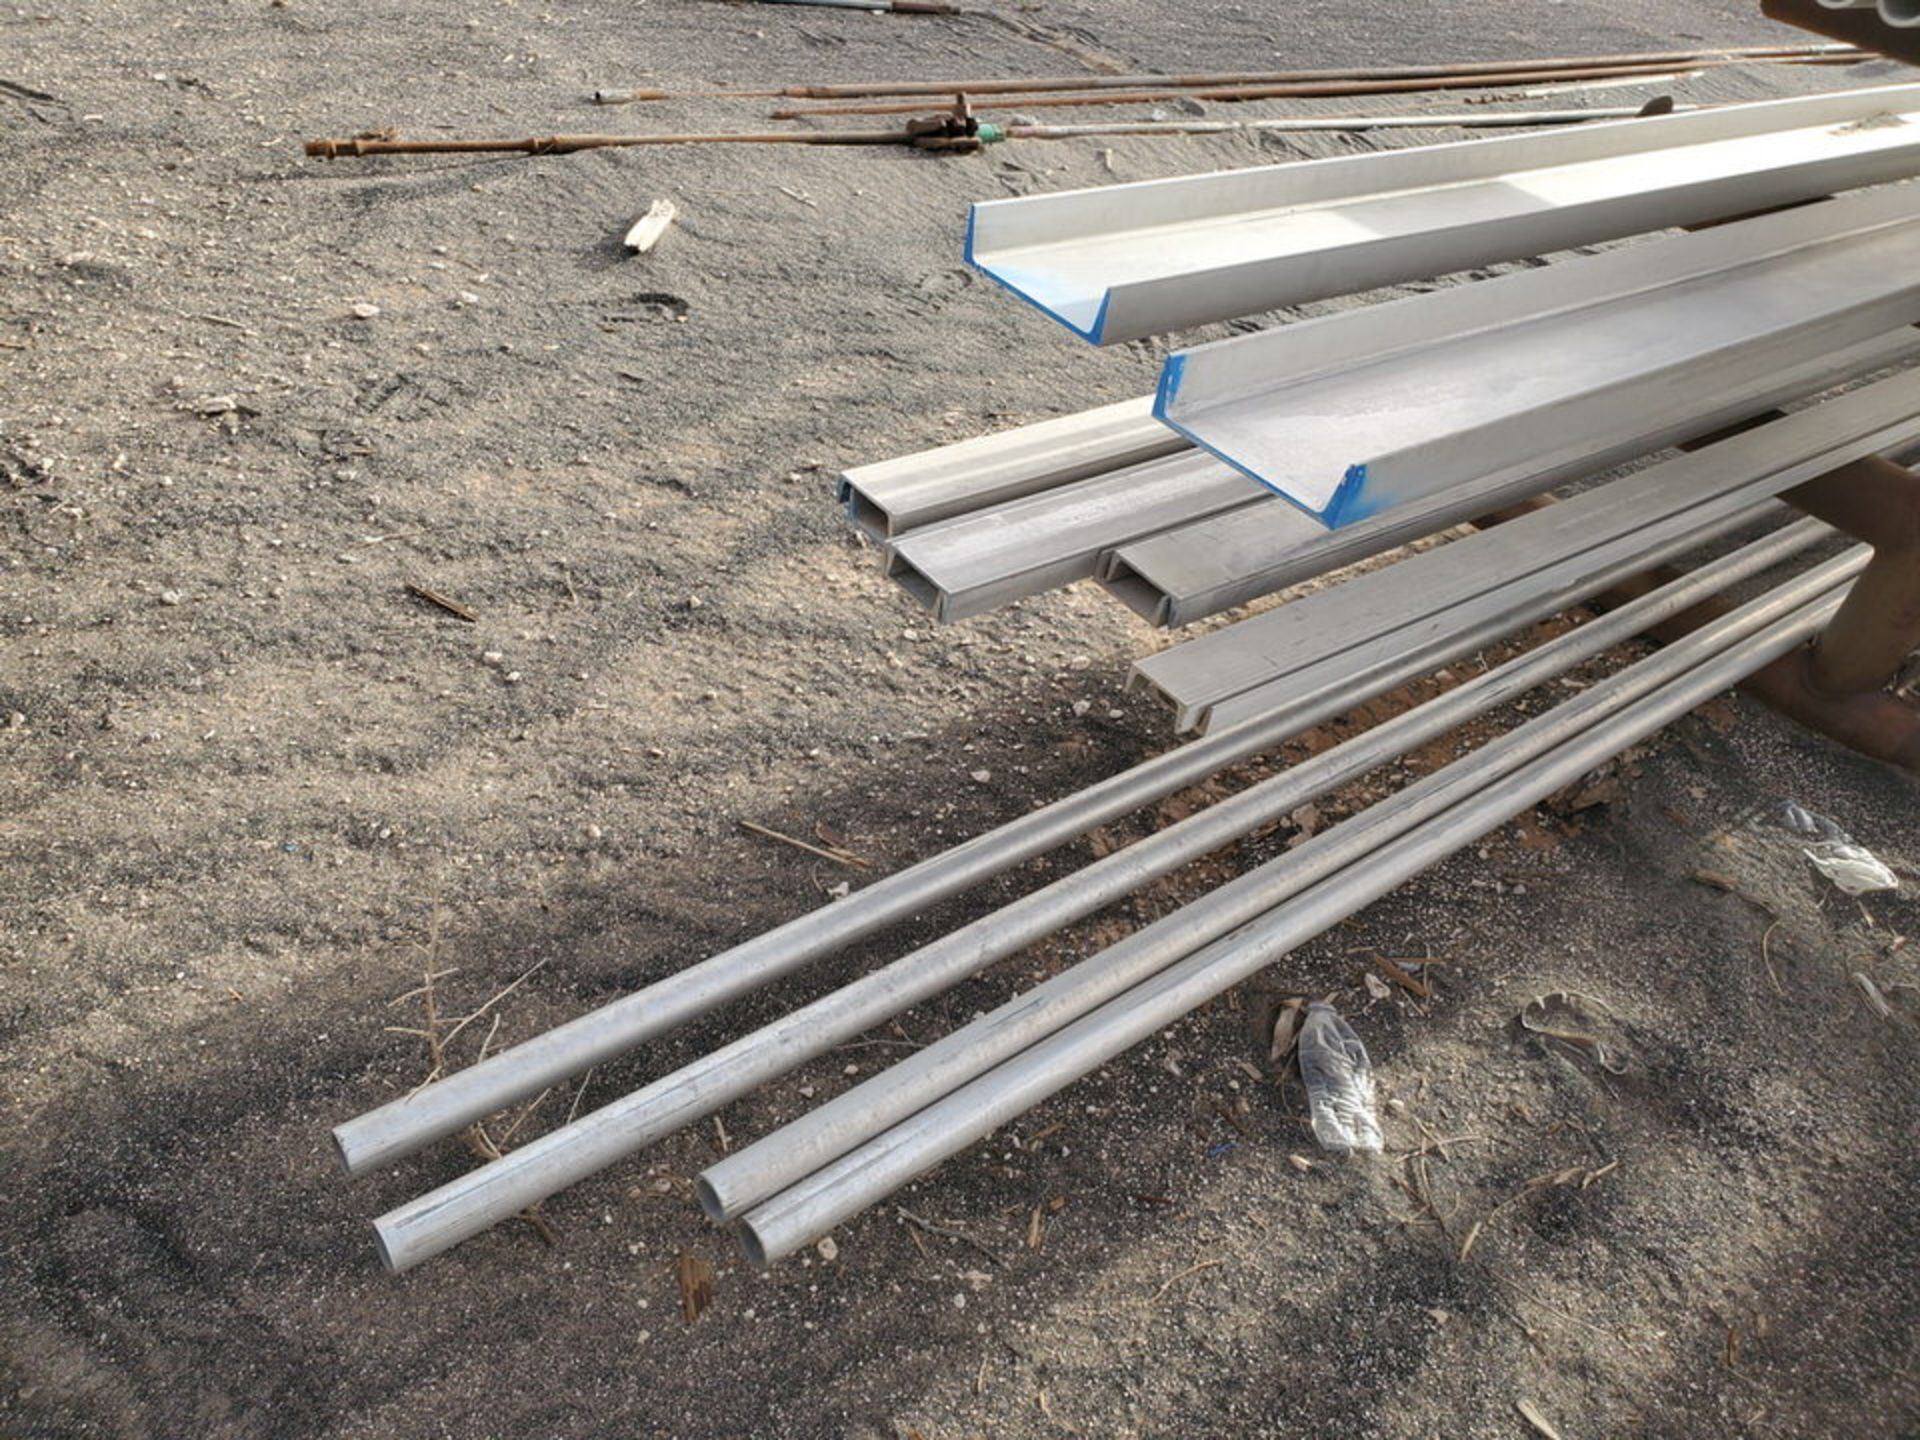 Assorted Matl. To Include But Limited To: S/S Channel, Pipe, Angle, Tubing, Rods, etc.(Rack - Image 16 of 19